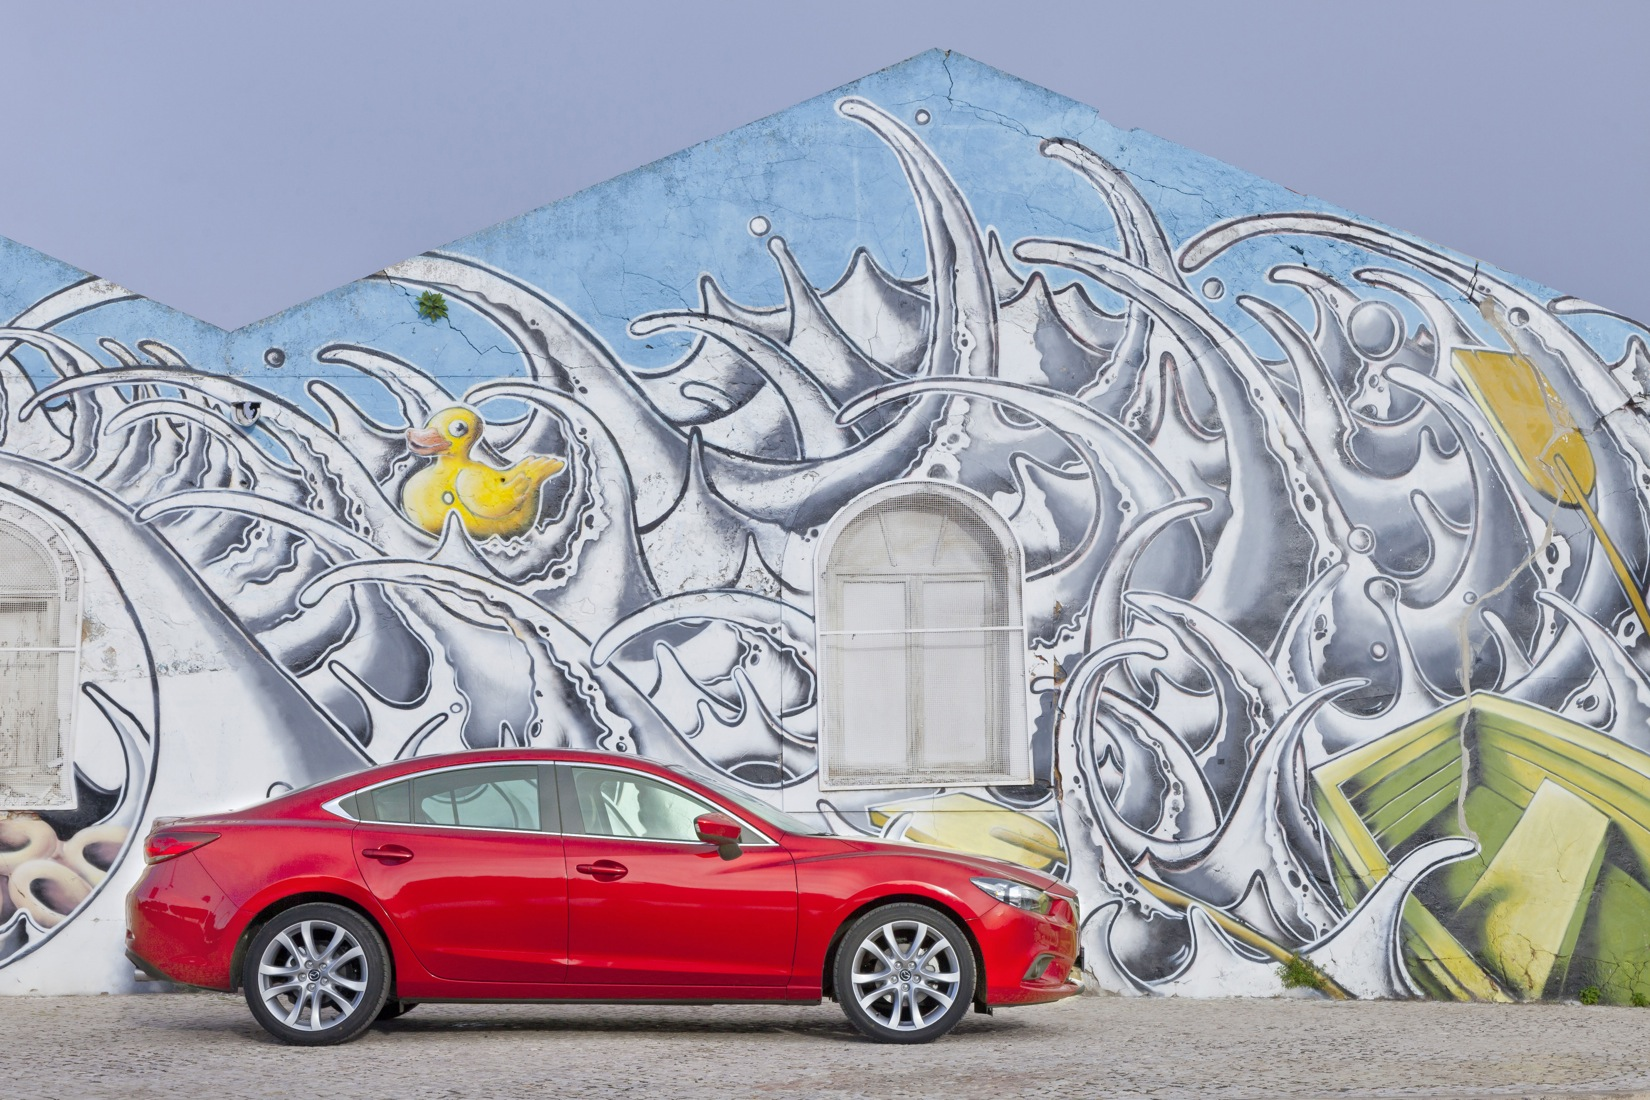 nuova-mazda-6-mazda6-sedan-2013 @ drivelife.it magazine on line